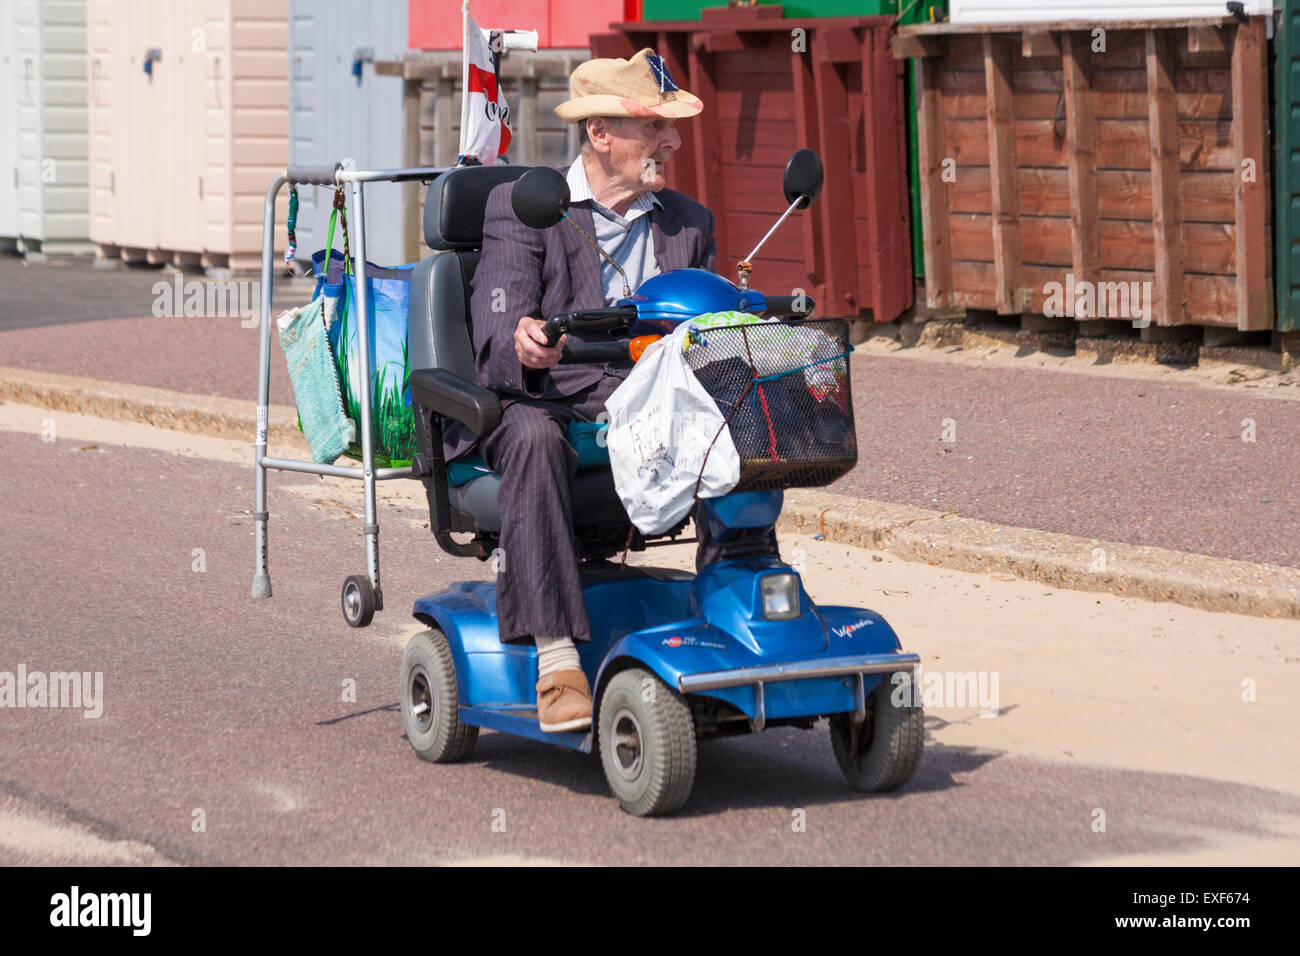 Elderly man on mobility scooter driving past row of beach for Motorized cart for seniors